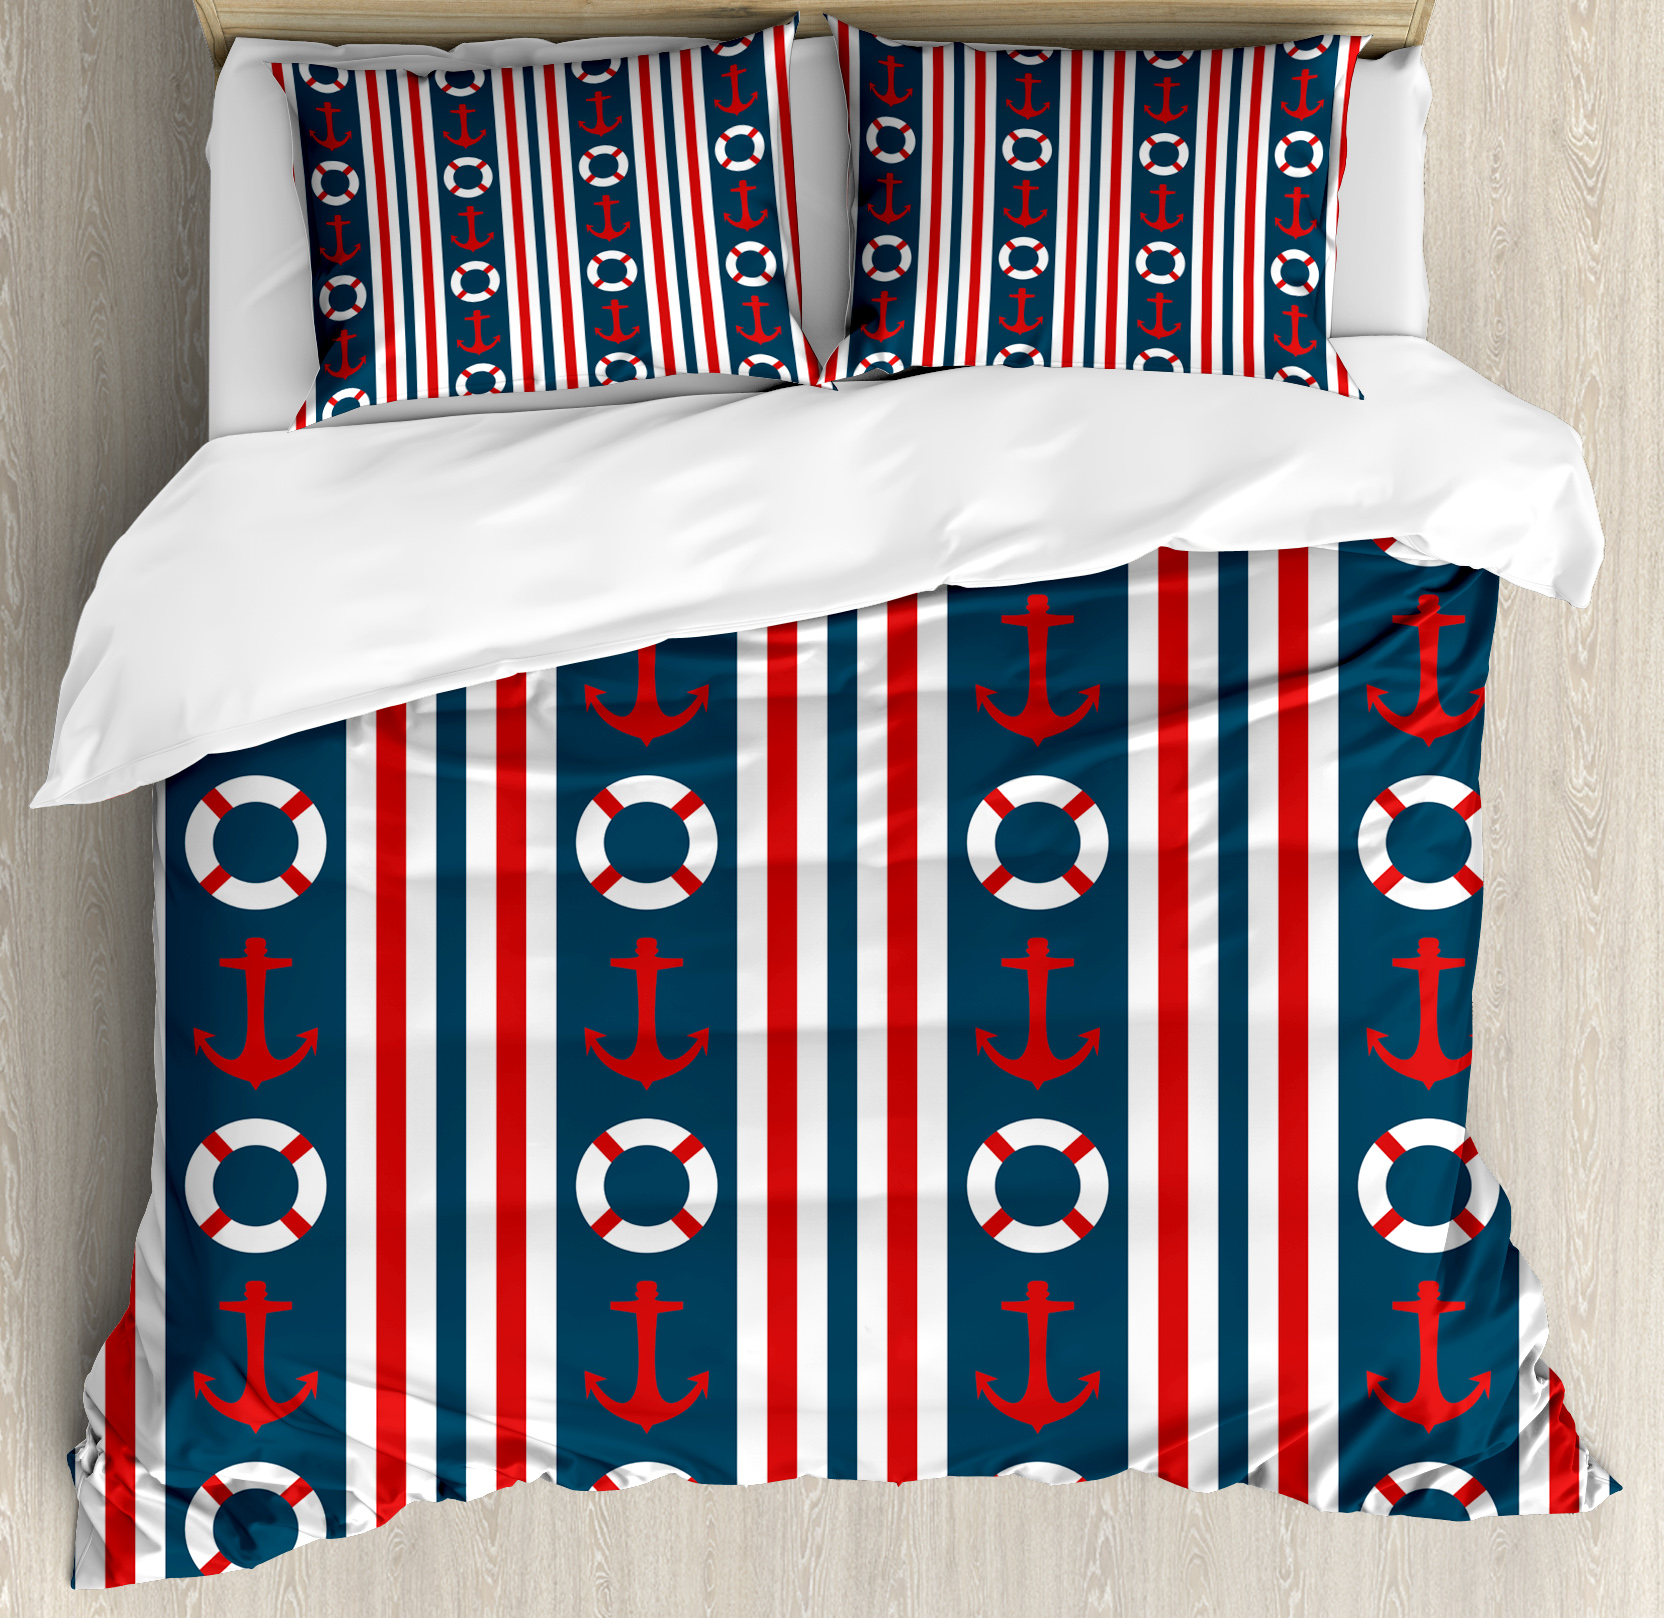 Nautical Duvet Cover Set, Vertical Borders Stripes Maritime Theme Steering Wheel and Anchor Pattern, Decorative Bedding Set with Pillow Shams, Indigo Red White, by Ambesonne